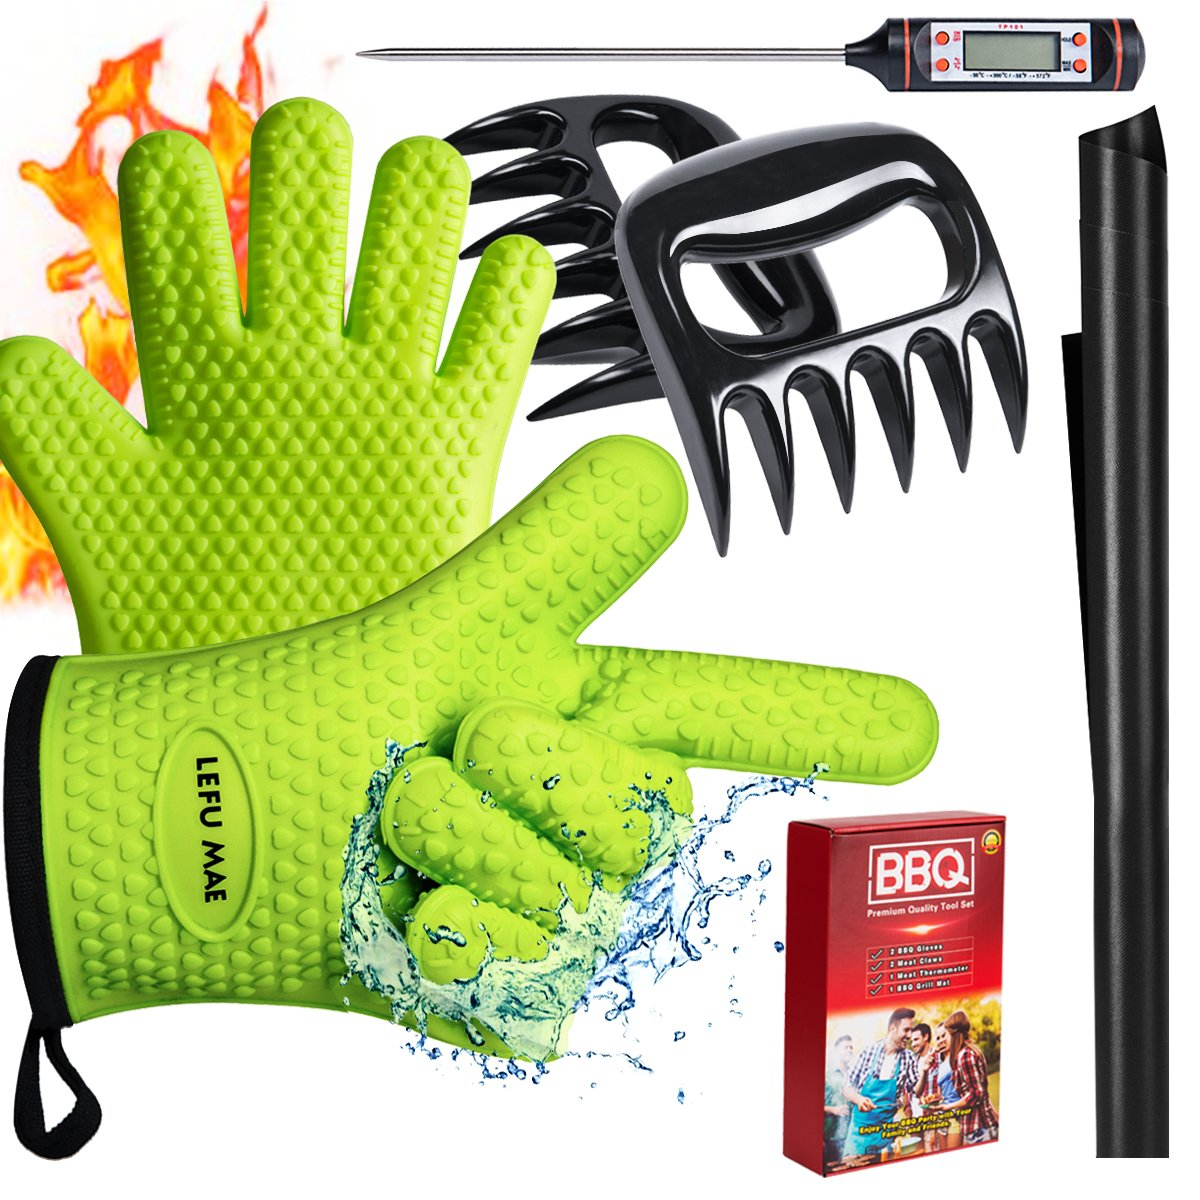 Lefu Mae BBQ Oven Gloves Heat Resistant, Meat Thermometer, Meat Shredder Claw and BBQ Grill Mat (4 in 1) BBQ Grill Accessory for Indoor Outdoor Cooking with Gift Box SHENZHEN